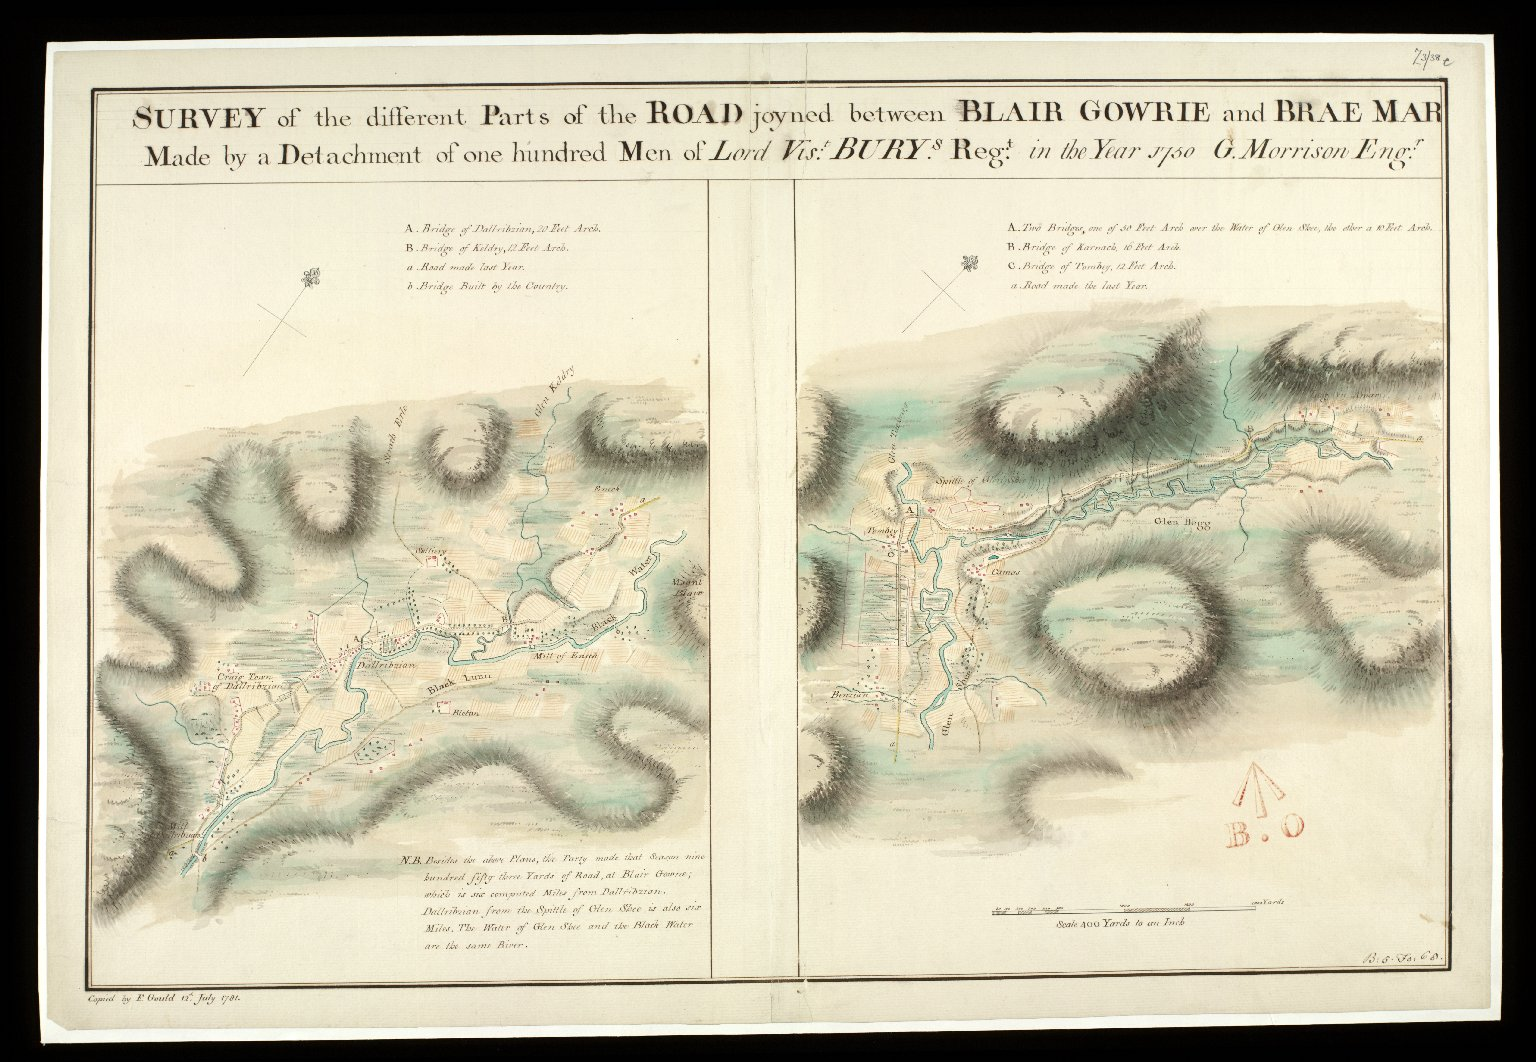 Survey of the different parts of the Road joyned betwixt Blair Gowrie and Brae Mar; Made by a Detachment of one Hundred Men of Lord Viscount Bury's Regt. in the Year 1750 [copy] [1 of 1]